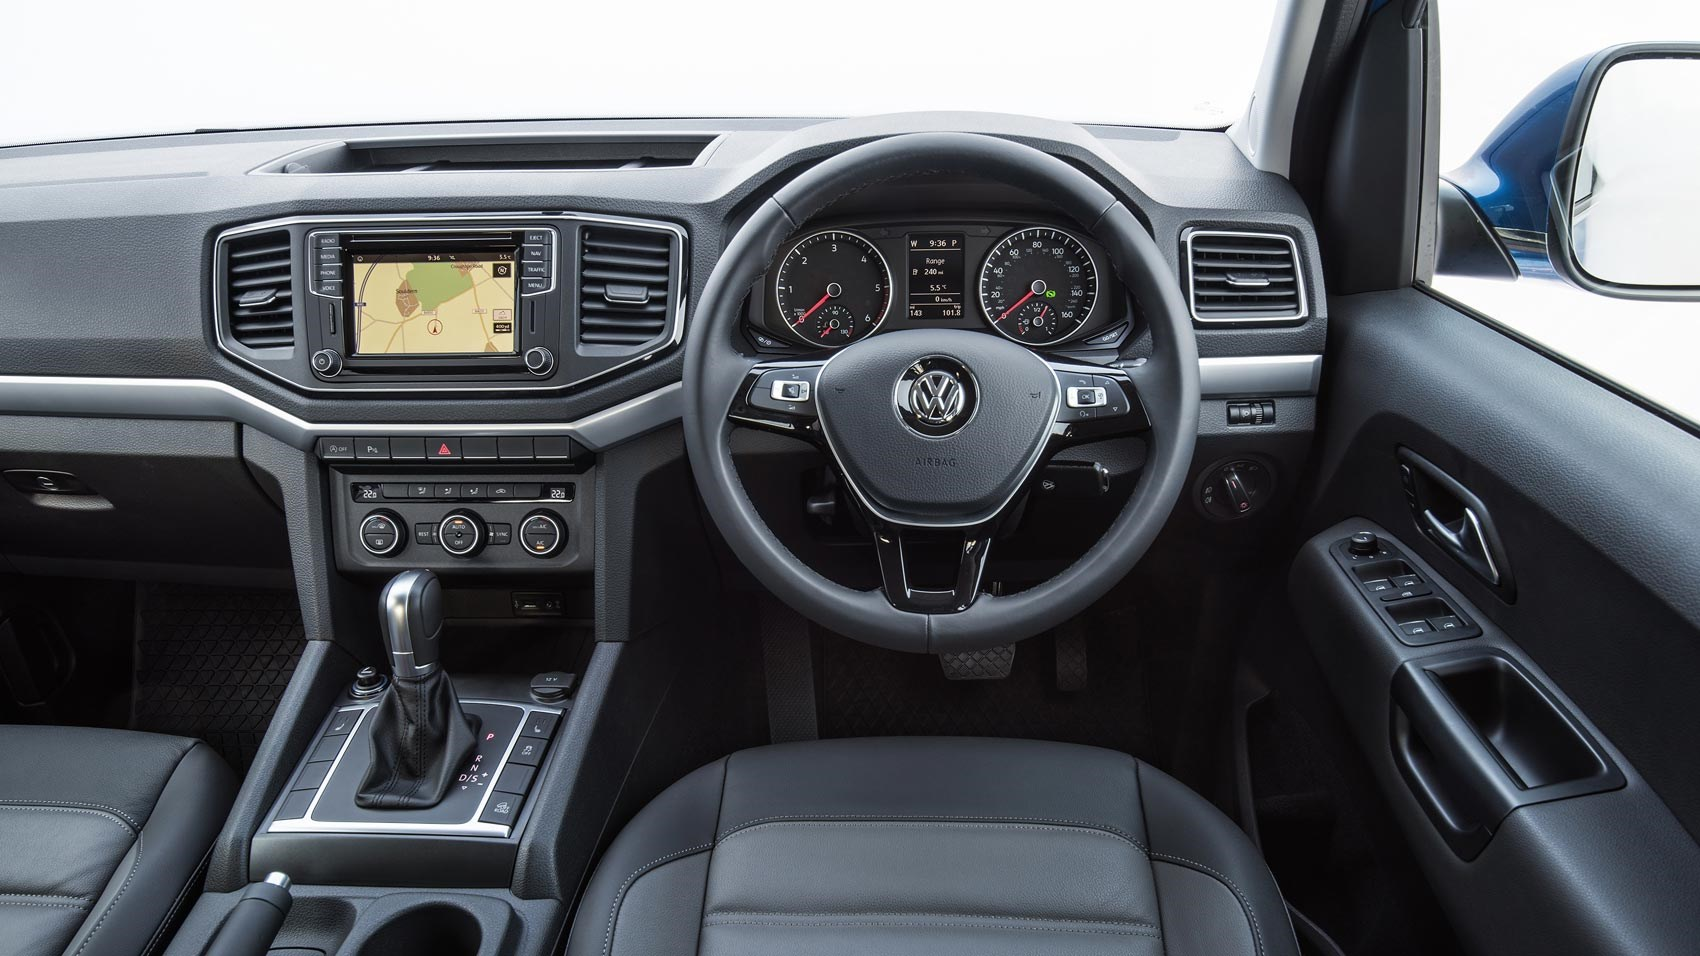 Toyota Tundra Diesel Review - Volkswagen Amarok V6 Aventura 4x4 (2017) review by CAR ...